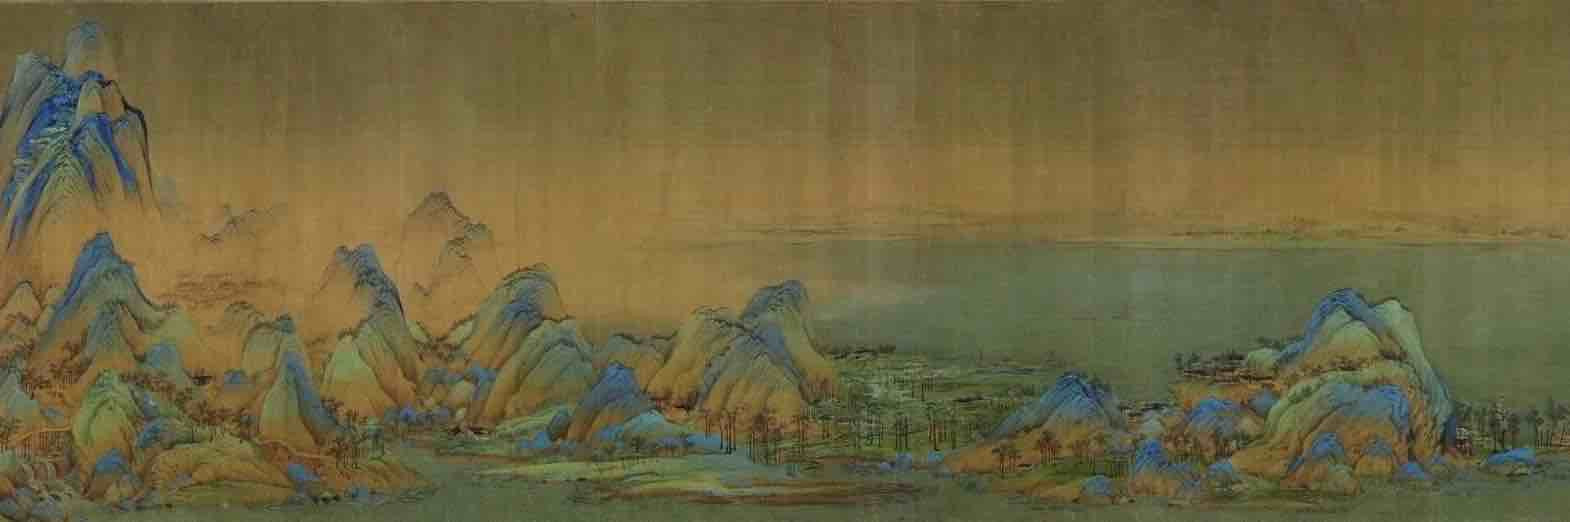 Painting Thousands Miles of Mountains and Rivers (Qian Li Jiang Shan Tu), by Artist Wang Ximeng of the Song Dynasty, Part 4